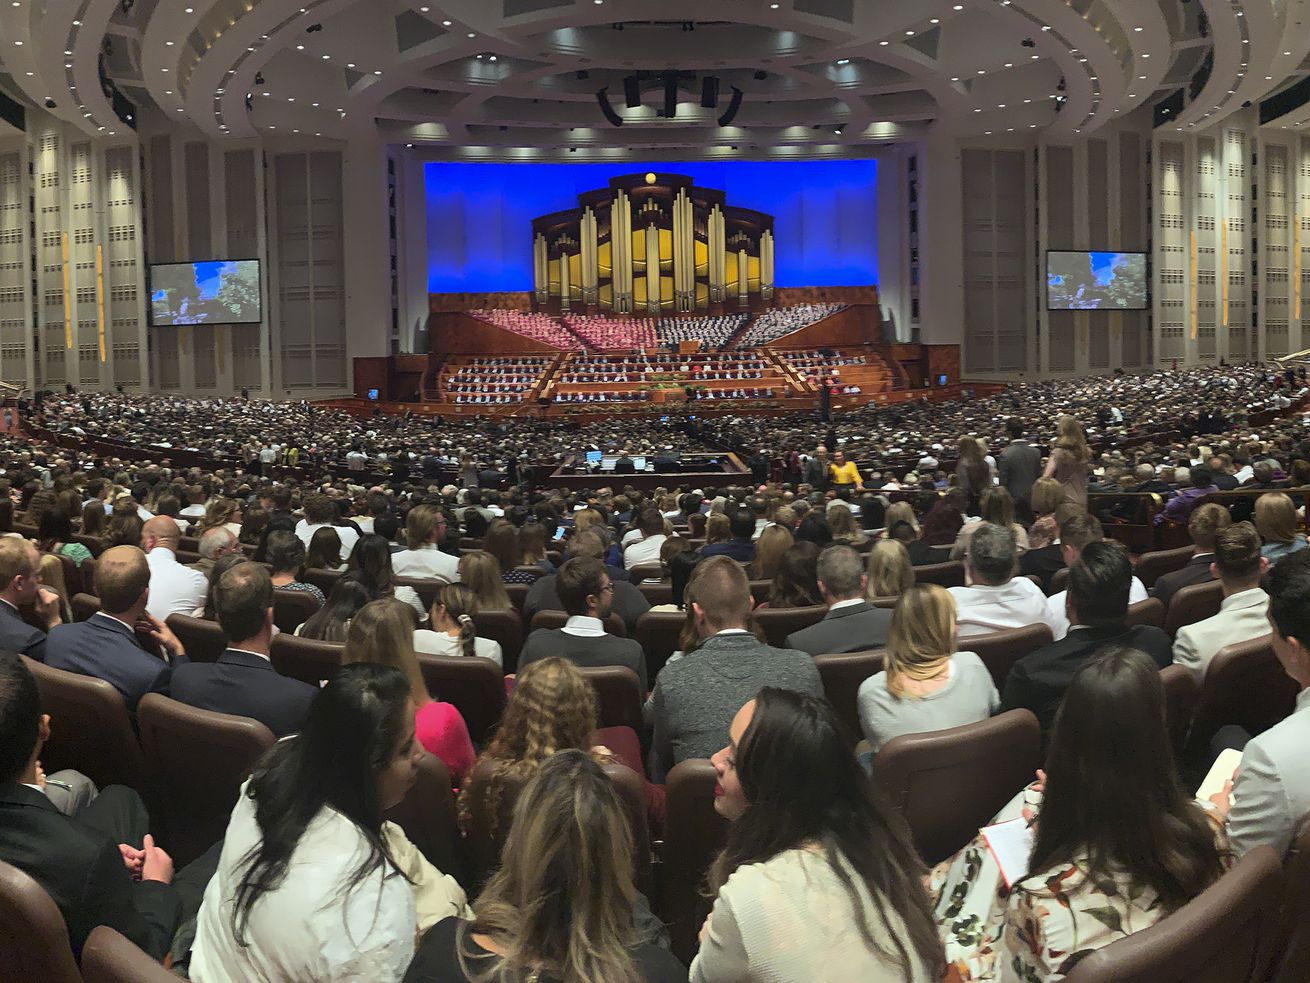 Attendees listen during the 189th Semiannual General Conference of The Church of Jesus Christ of Latter-day Saints in Salt Lake City on Sunday, Oct. 6, 2019.